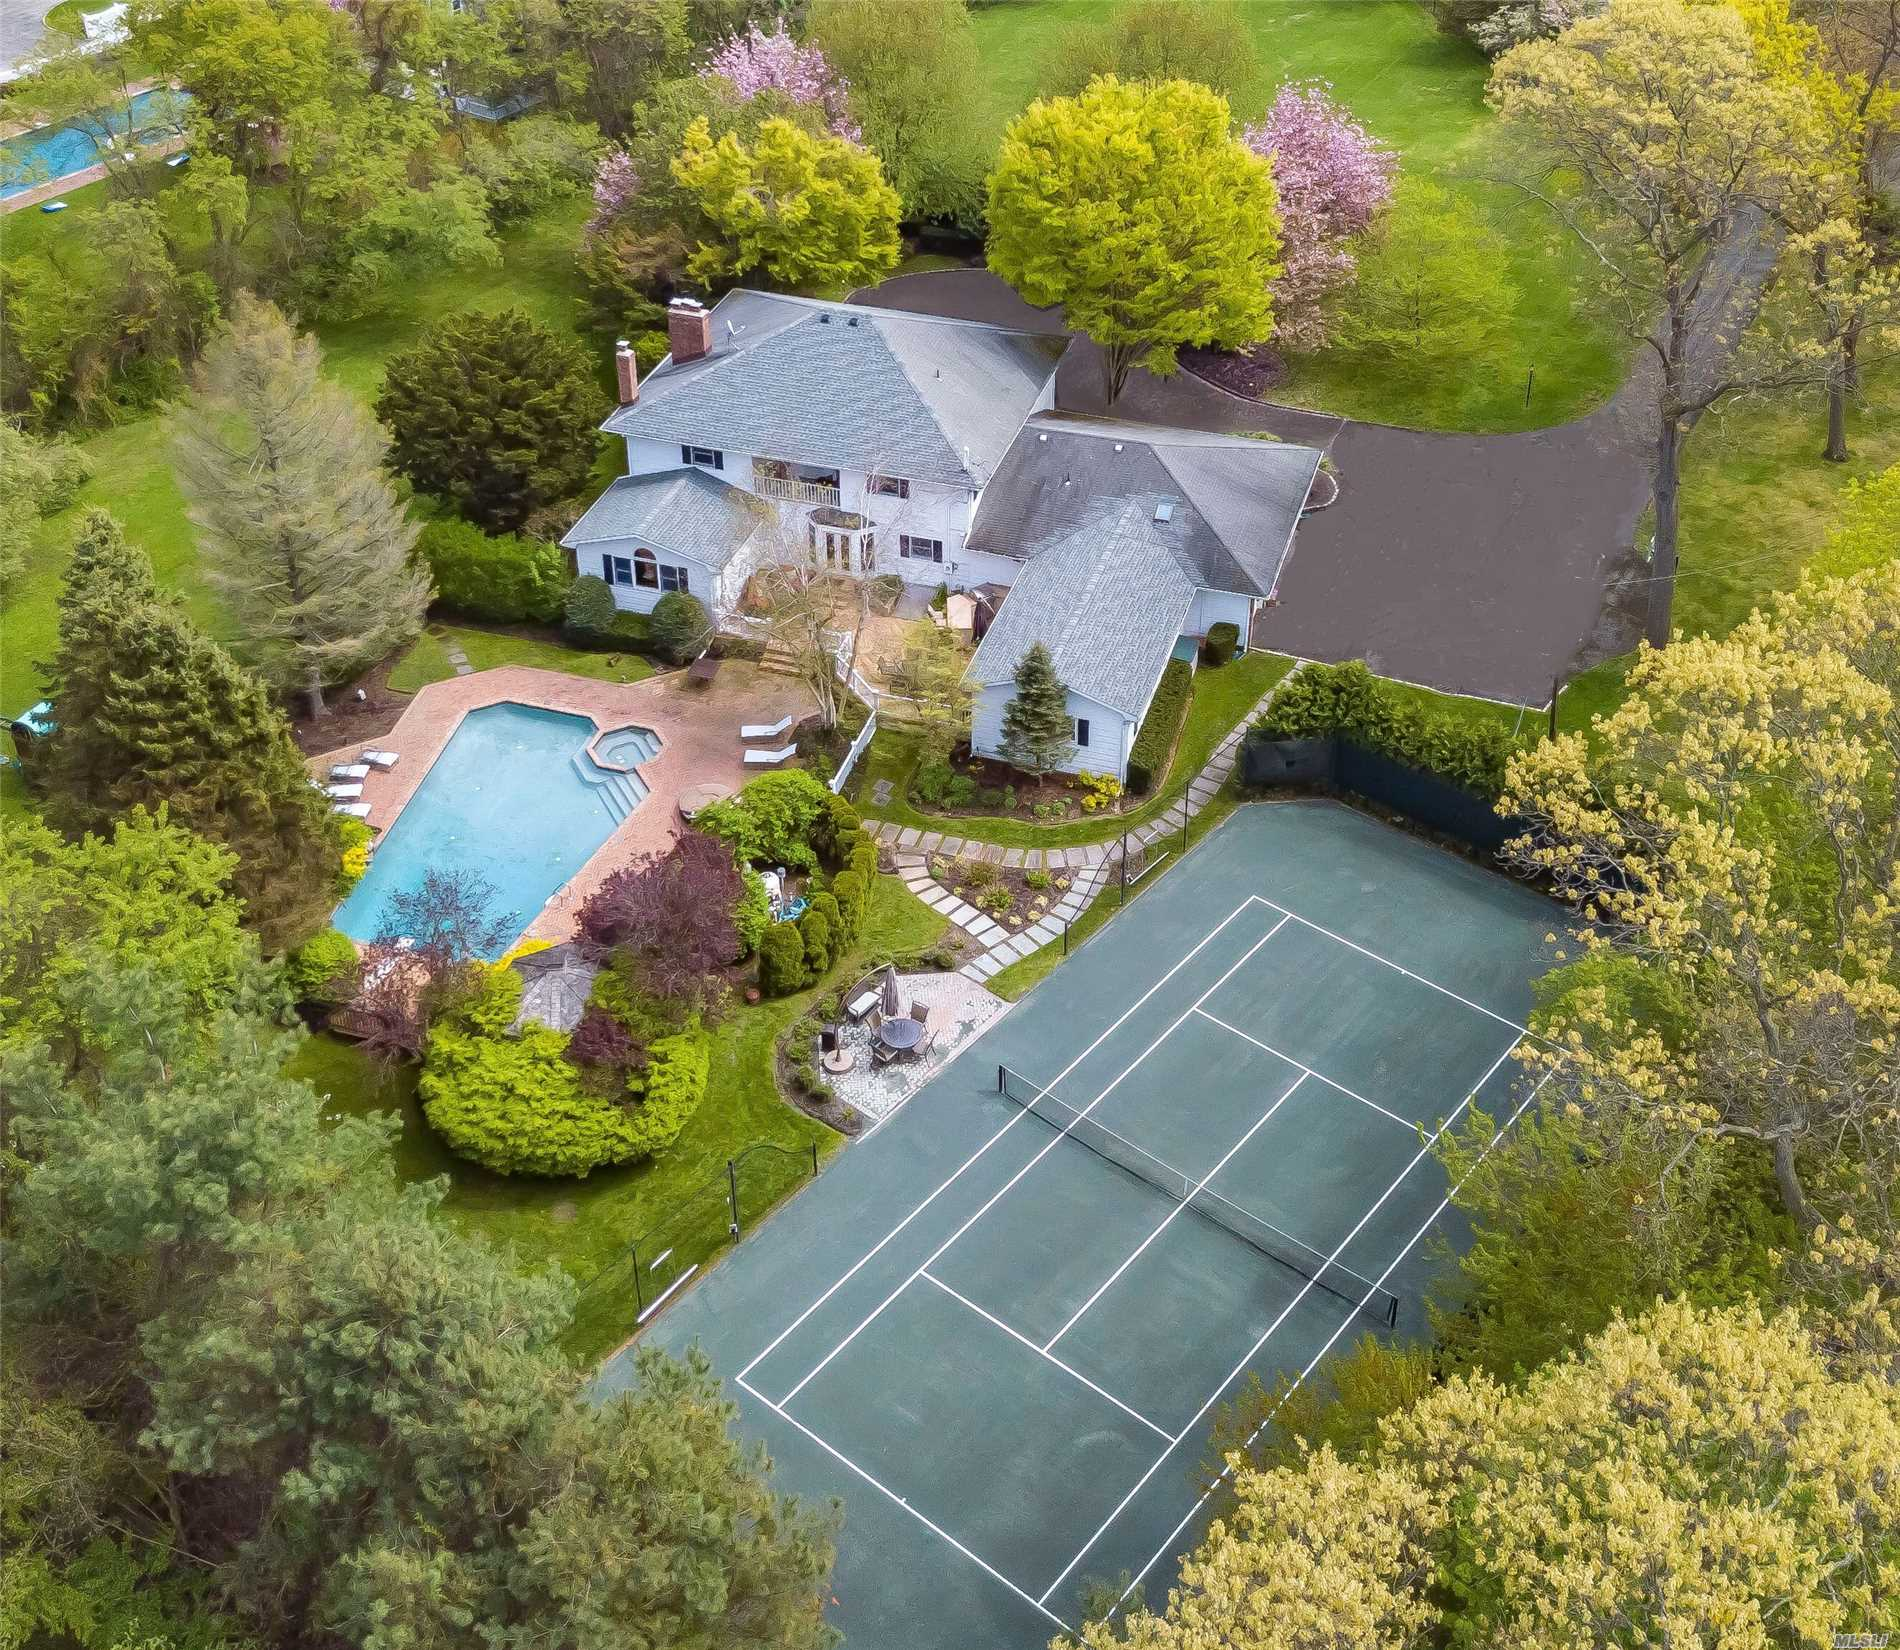 Tennis Lovers Paradise In Heart Of North Shore Gold Coast. Private Gated Drive Leads To Elegant Country Colonial On 2.4 Acres Of Lush Greenery With Olympic Heated Pool, Delightful Gazebo, Har-Tru Tennis Court, And An Outdoor Entertainment Area. New Kitchen With Top-Of-The-Line Appliances, Open Floor Plan, Three Room Separate Guest Suite. Reasonable Taxes. Full House Generator. Convenient To Miracle Mile & Transportation. Highly Rated Locust Valley S.D.